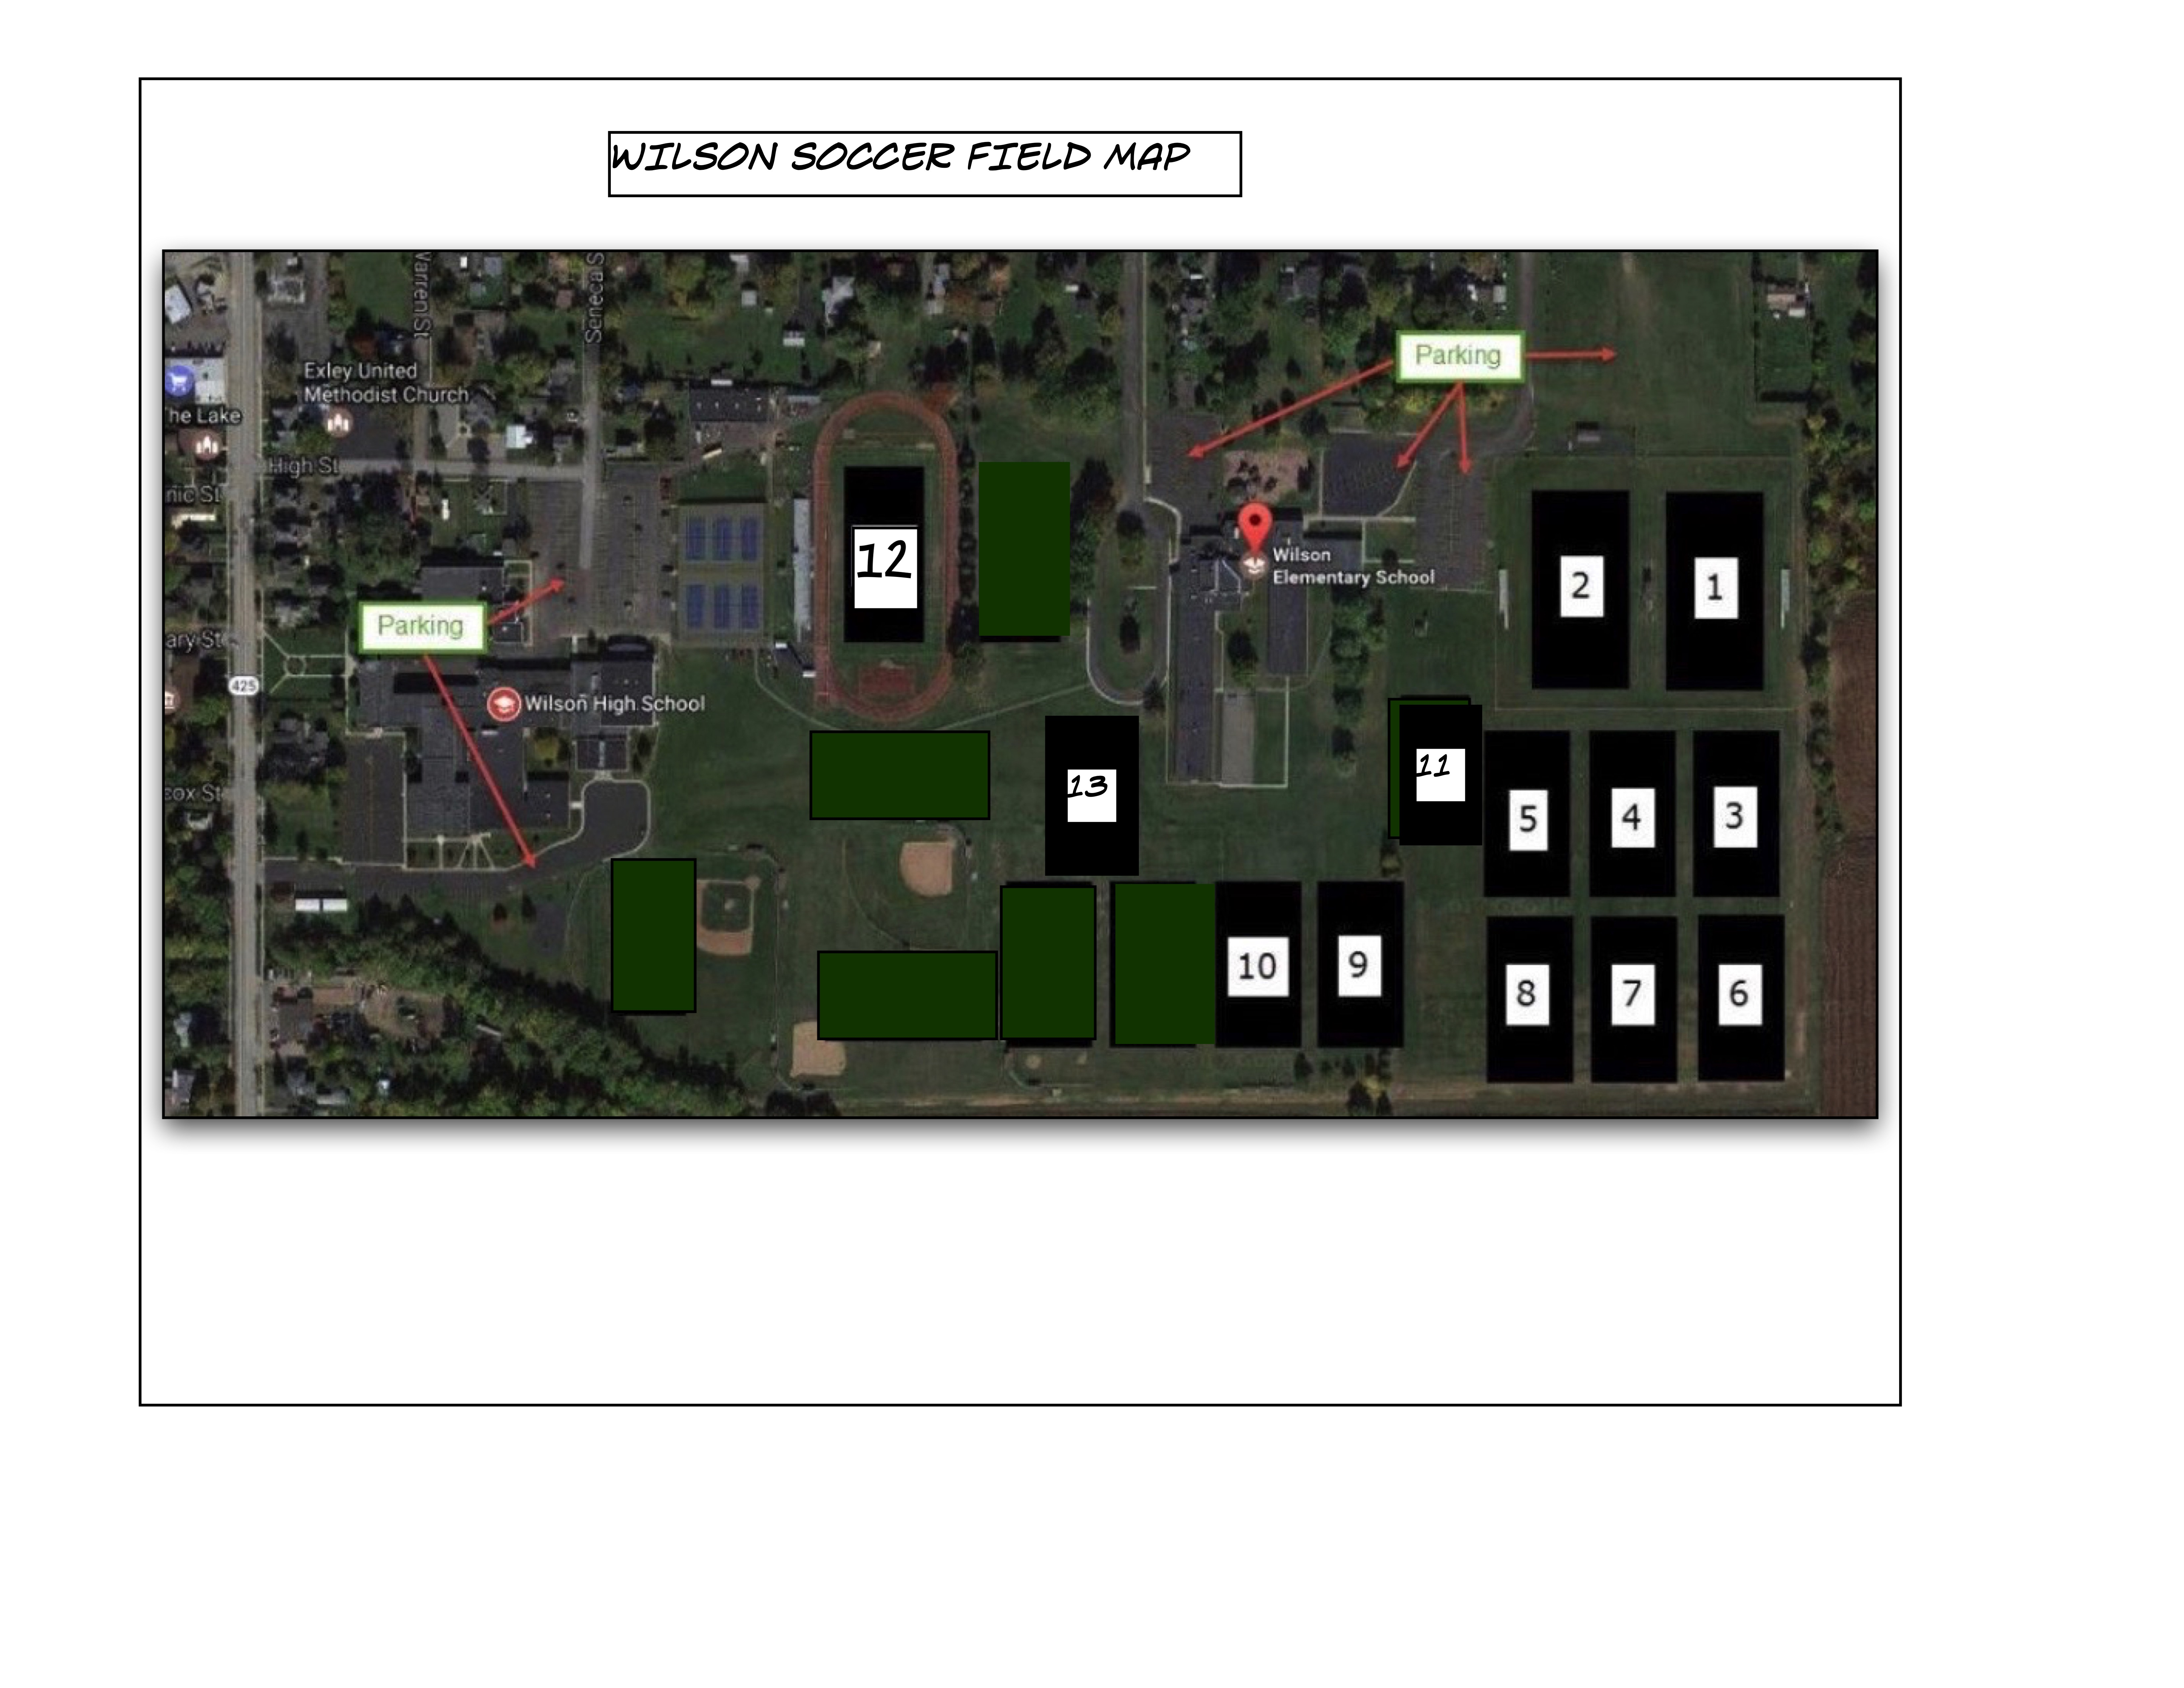 new field map